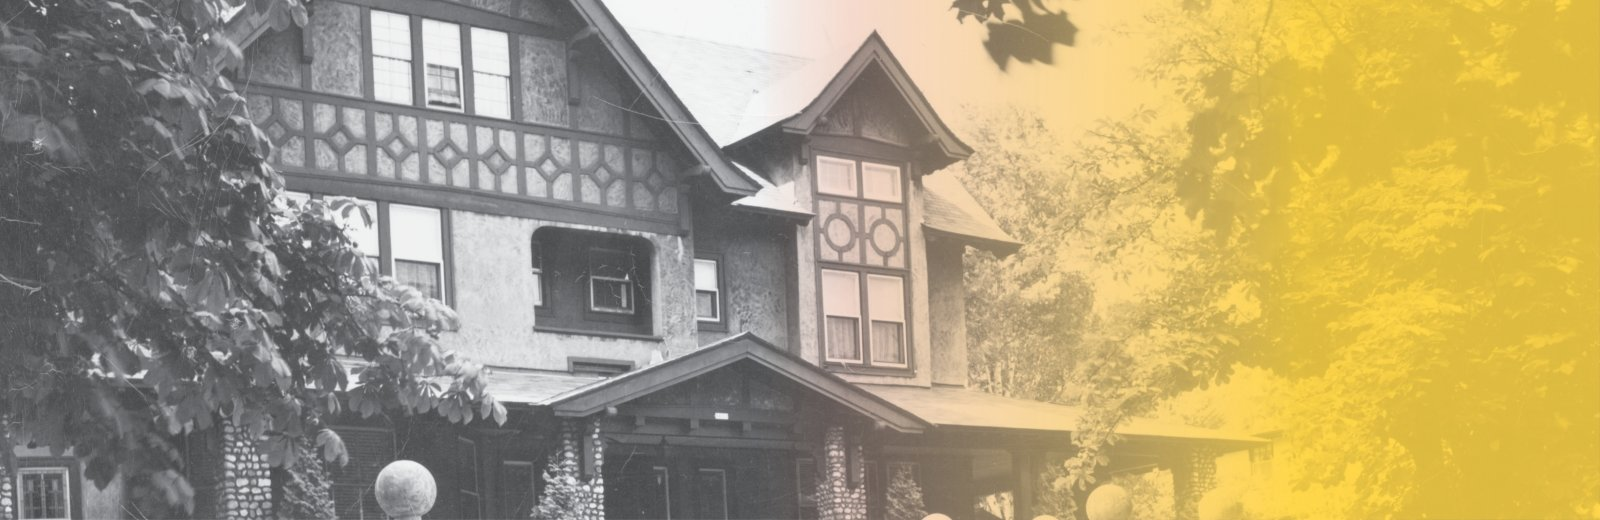 This summer, students in the Archaeology Field School will do fieldwork around the       Keweenaw, including the site of Smith House, location of one of the first women's       residential dormitories on campus. Students will design archaeological surveys using       STEM tools including remote sensing. Do you remember the Smith House?